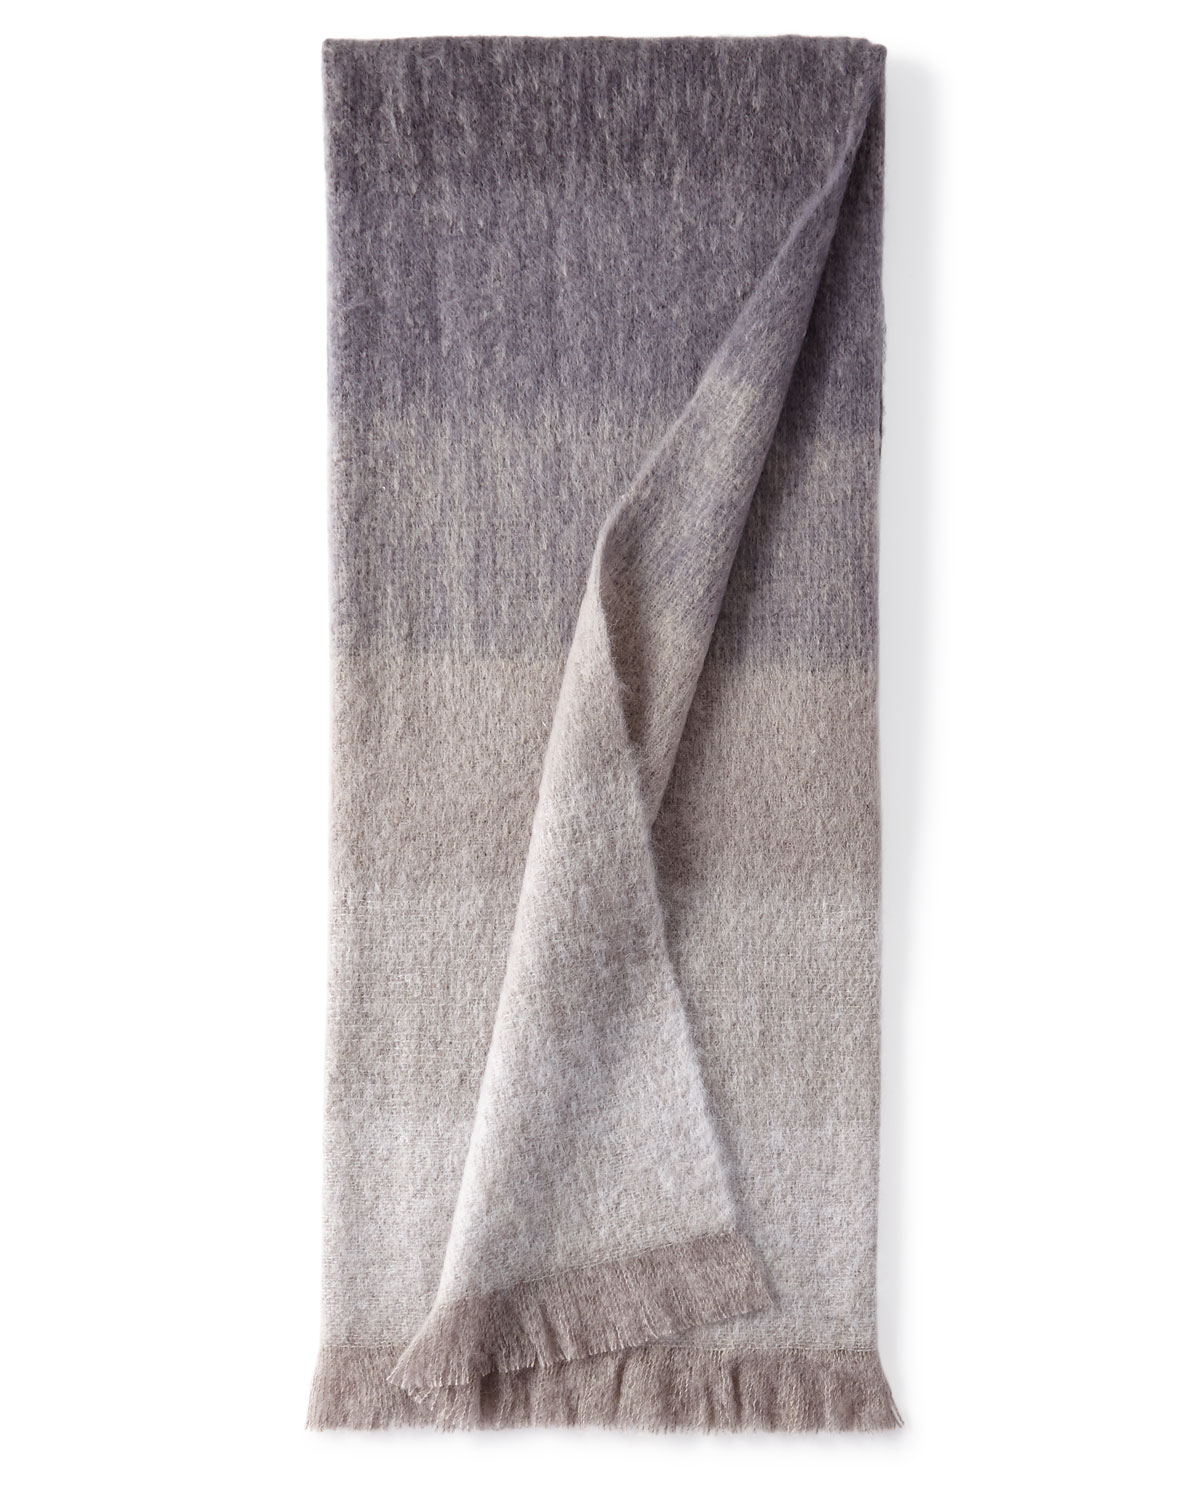 Dip Dyed Mohair Throw Blanket, Charcoal